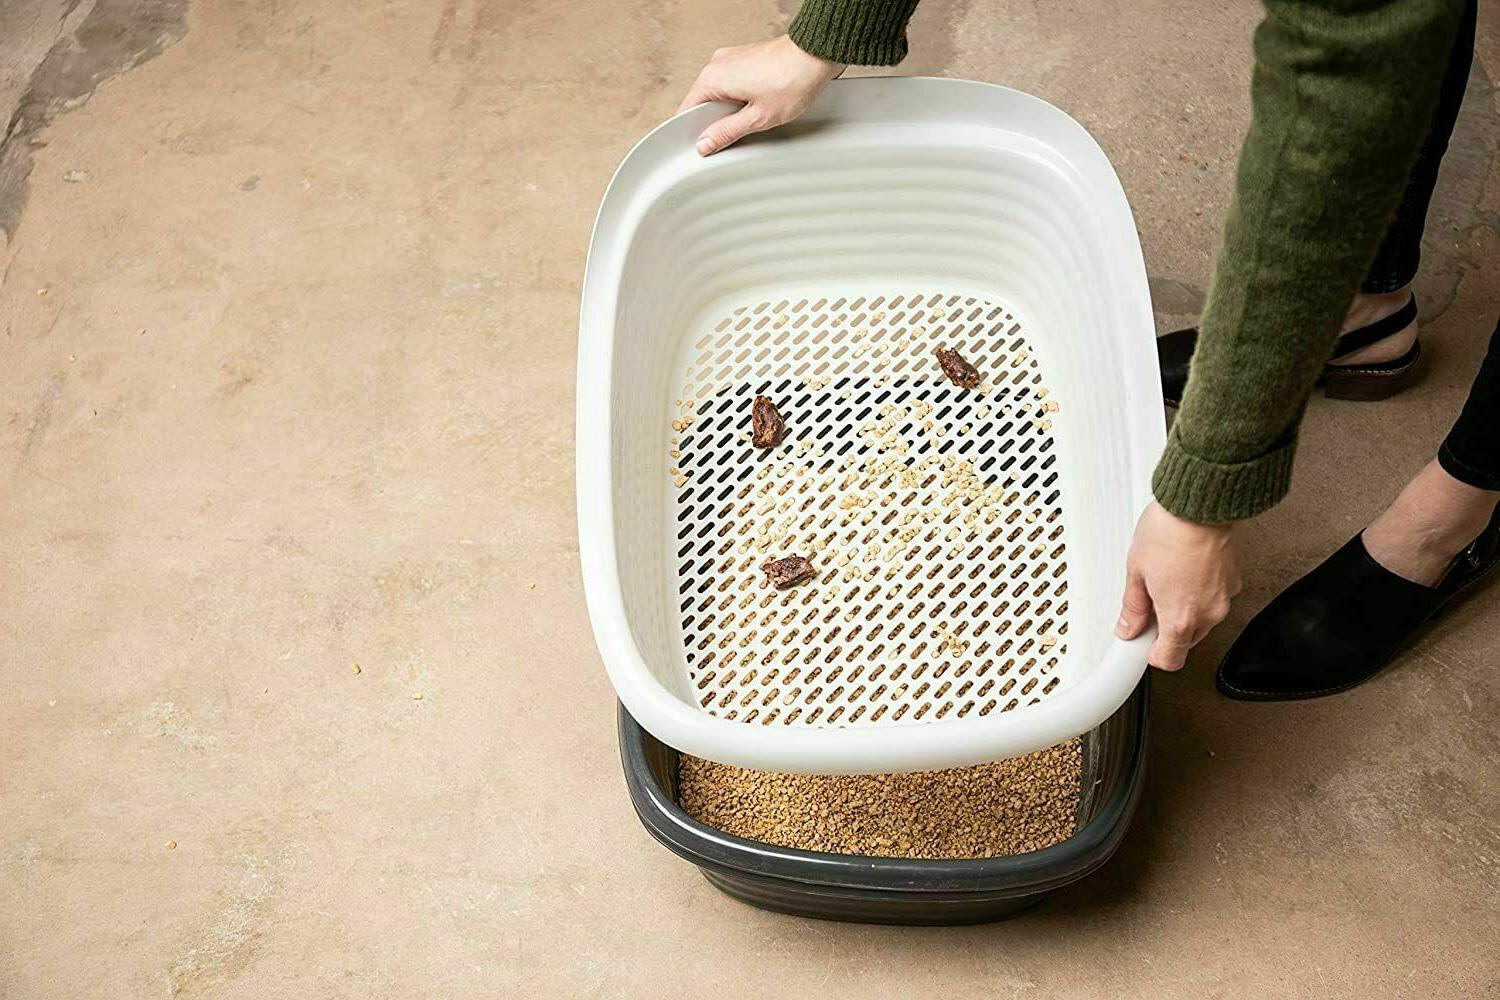 Cat Self Clean Slotted Tray 3 Part